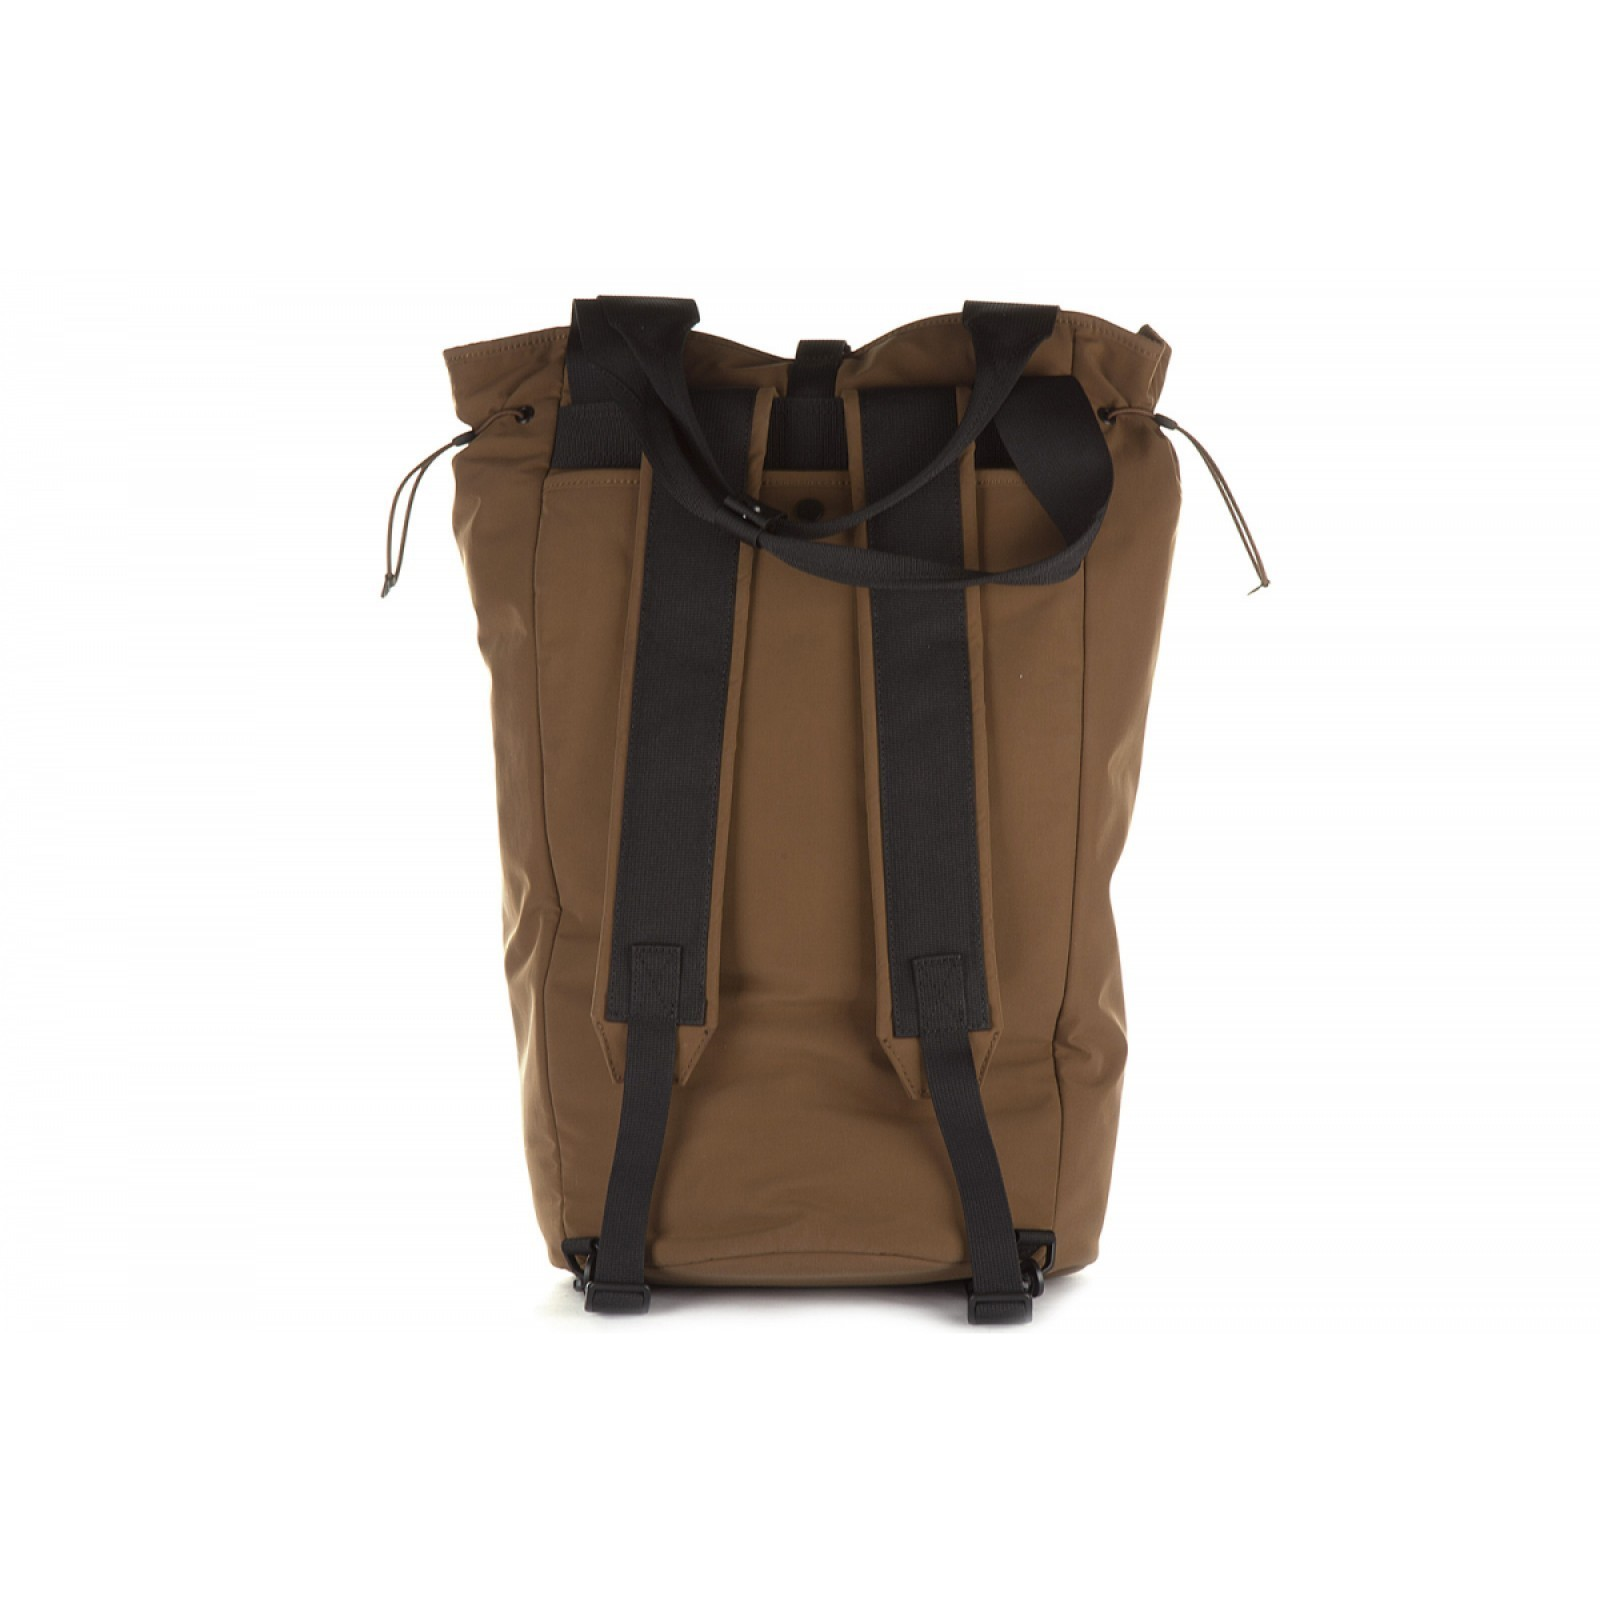 送料込 rucksack backpack travel バッグ